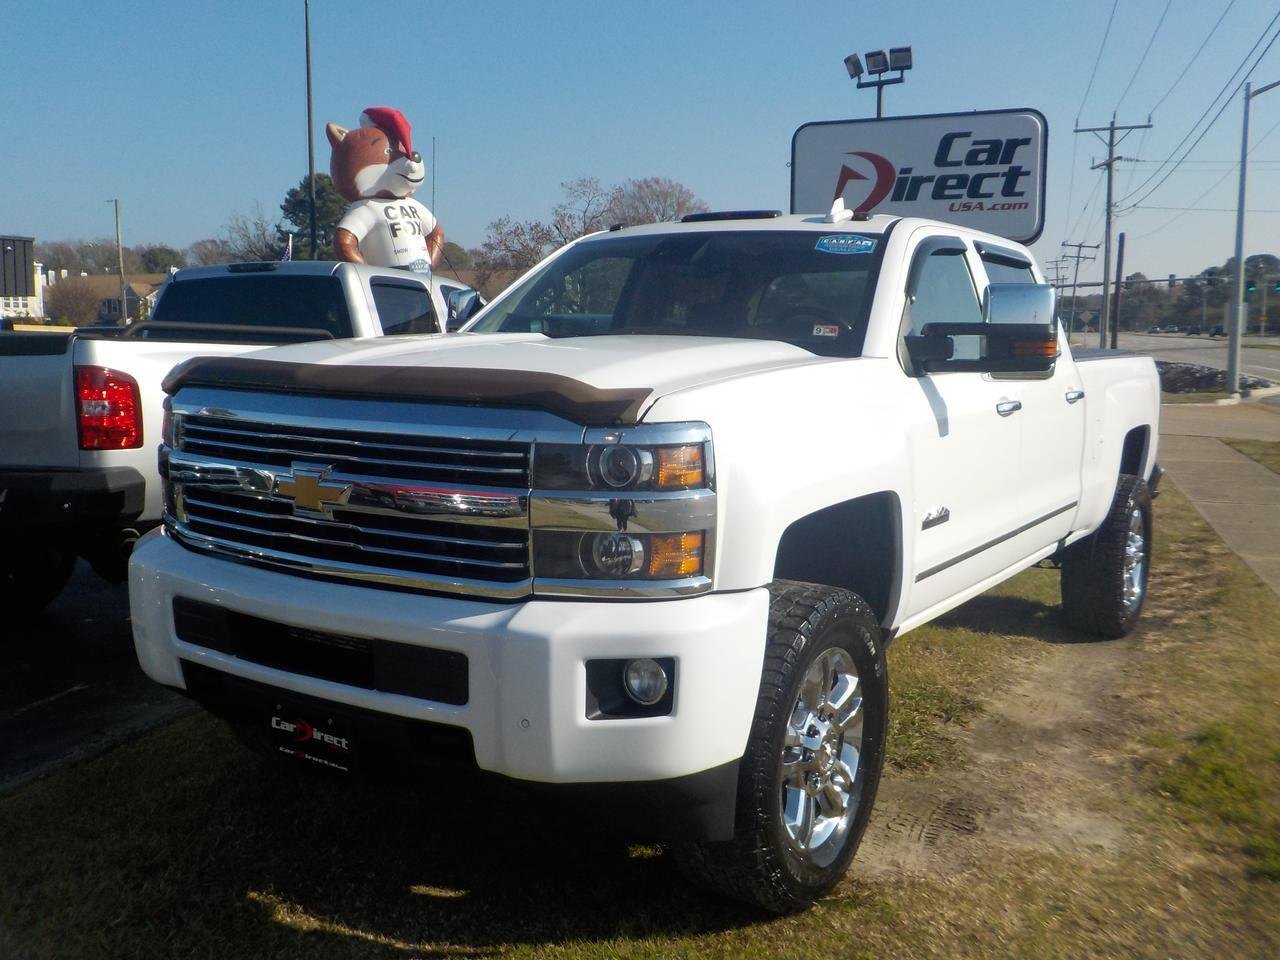 2016 CHEVROLET SILVERADO 2500 HIGH COUNTRY CREW CAB 4X4, ONE OWNER LEATHER, BOSE SOUND SYSTEM, REMOTE START, BACKUP CAMERA!